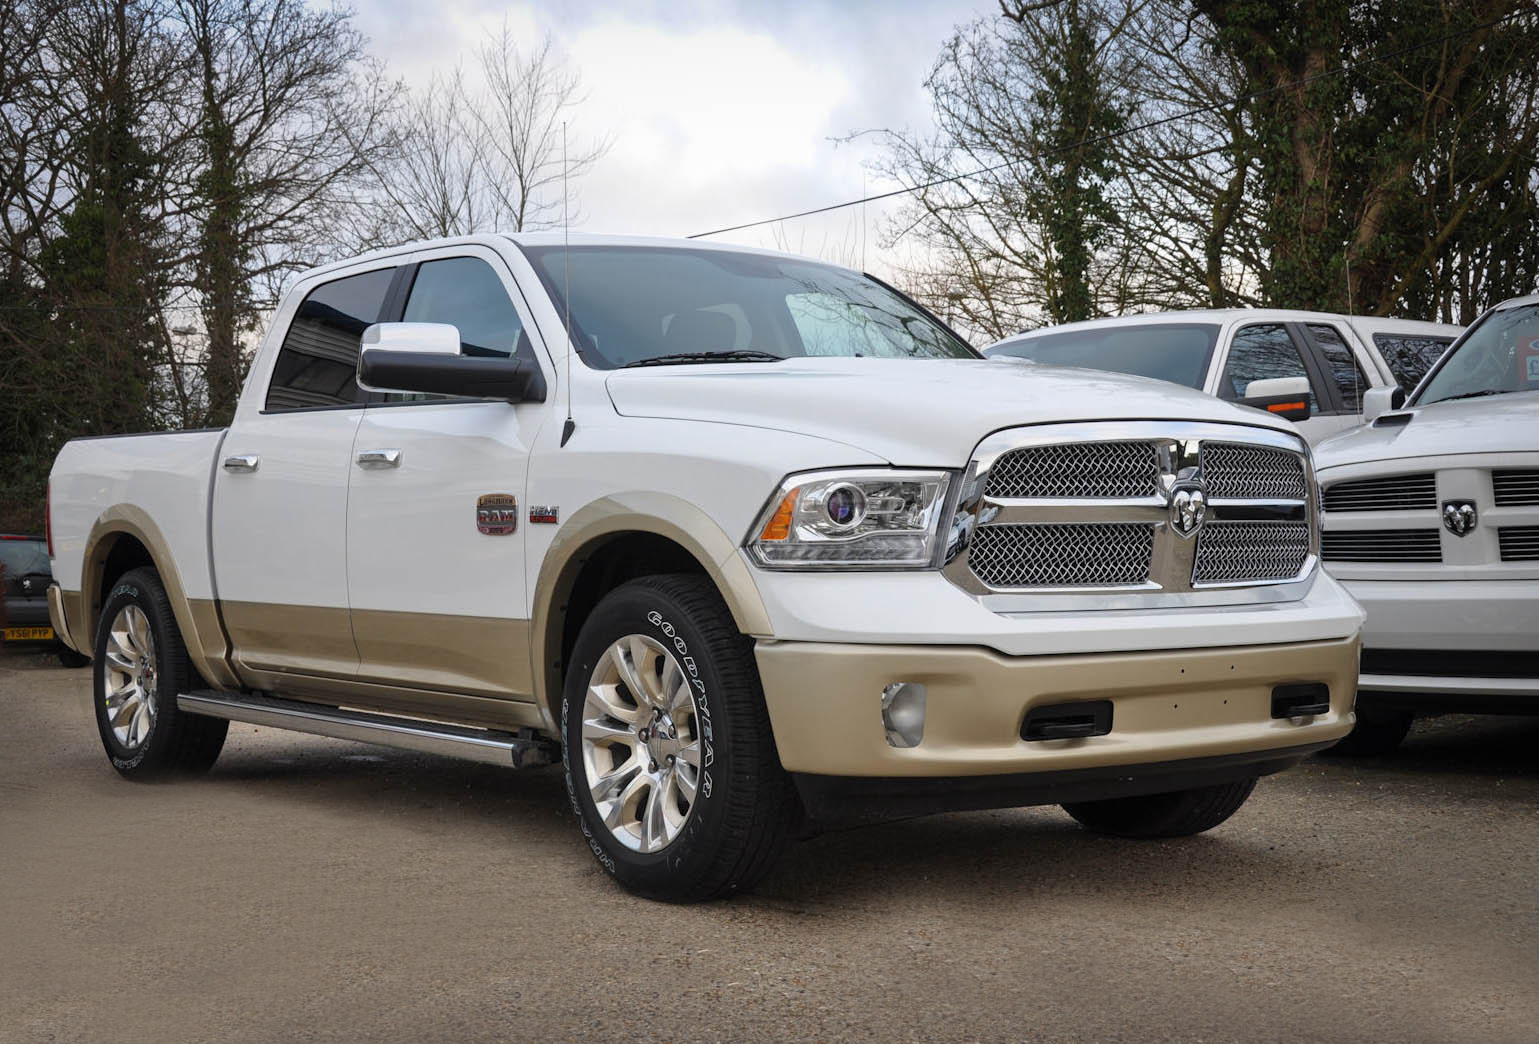 2013 dodge ram laramie longhorn crew cab 4 4 with sat nav david boatwright partnership dodge. Black Bedroom Furniture Sets. Home Design Ideas